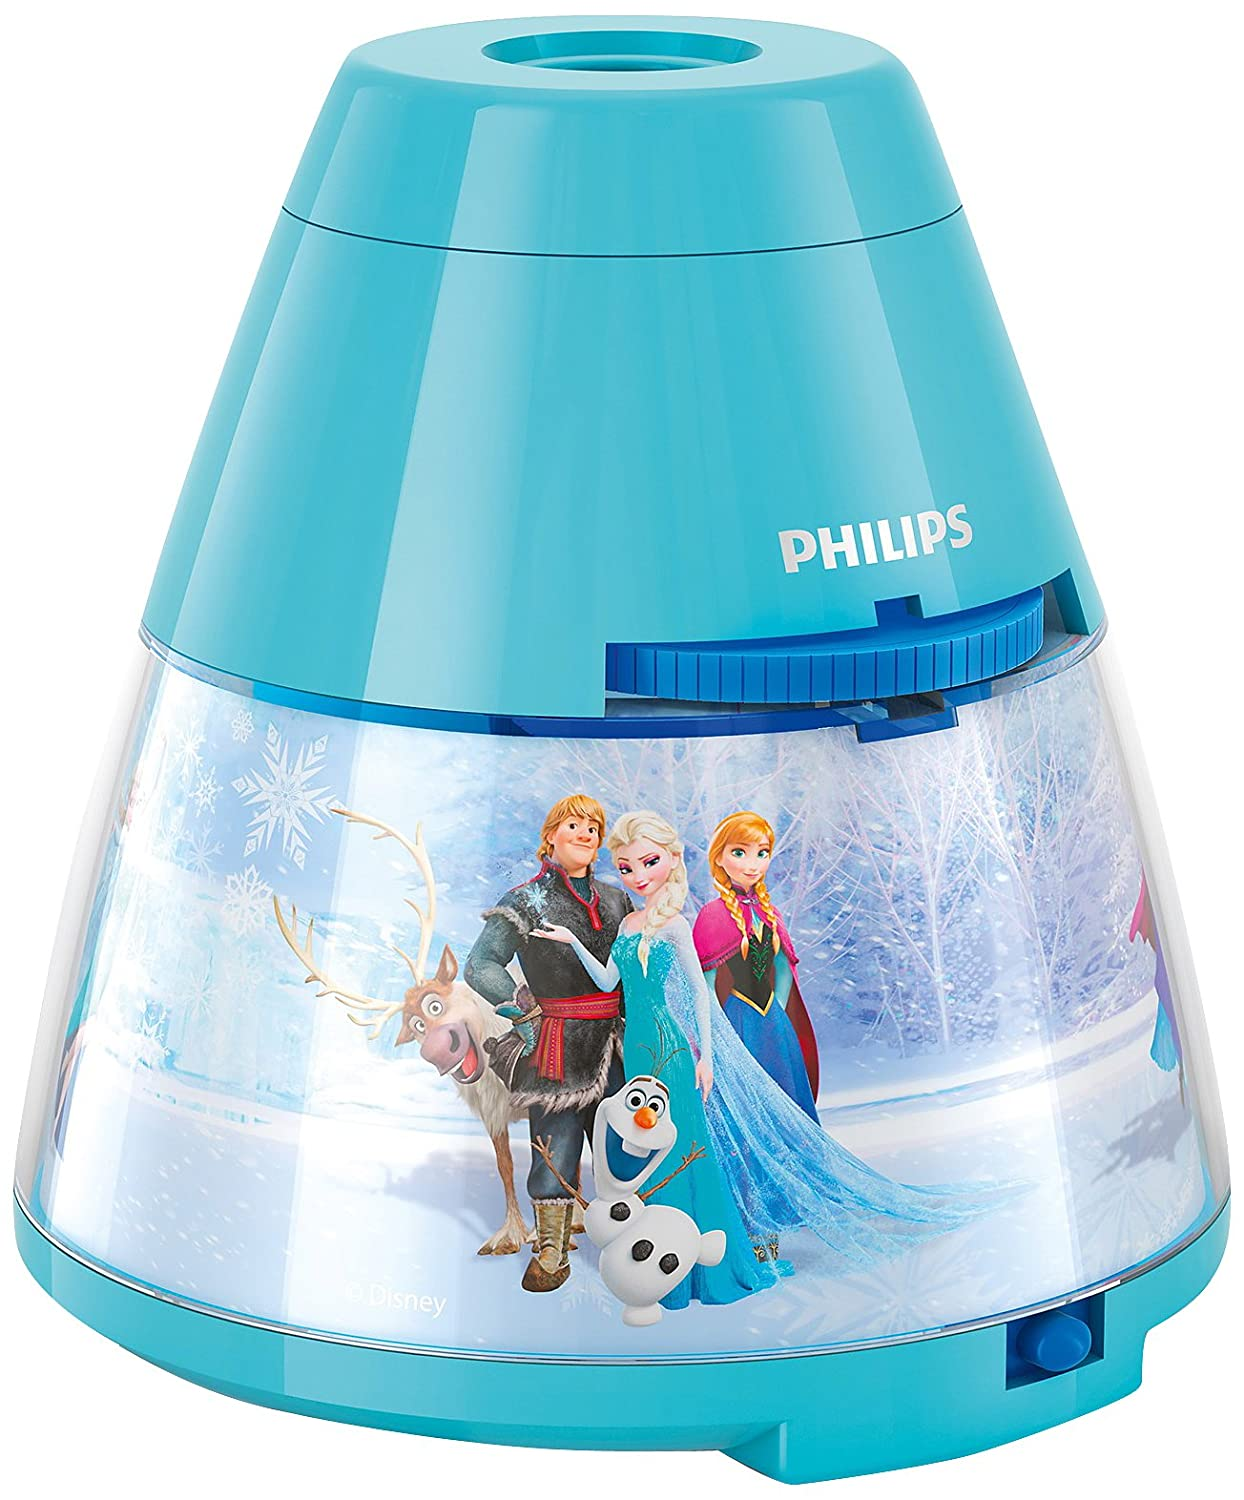 Disney frozen bedside table lamp children night light - Lampe de table enfant ...